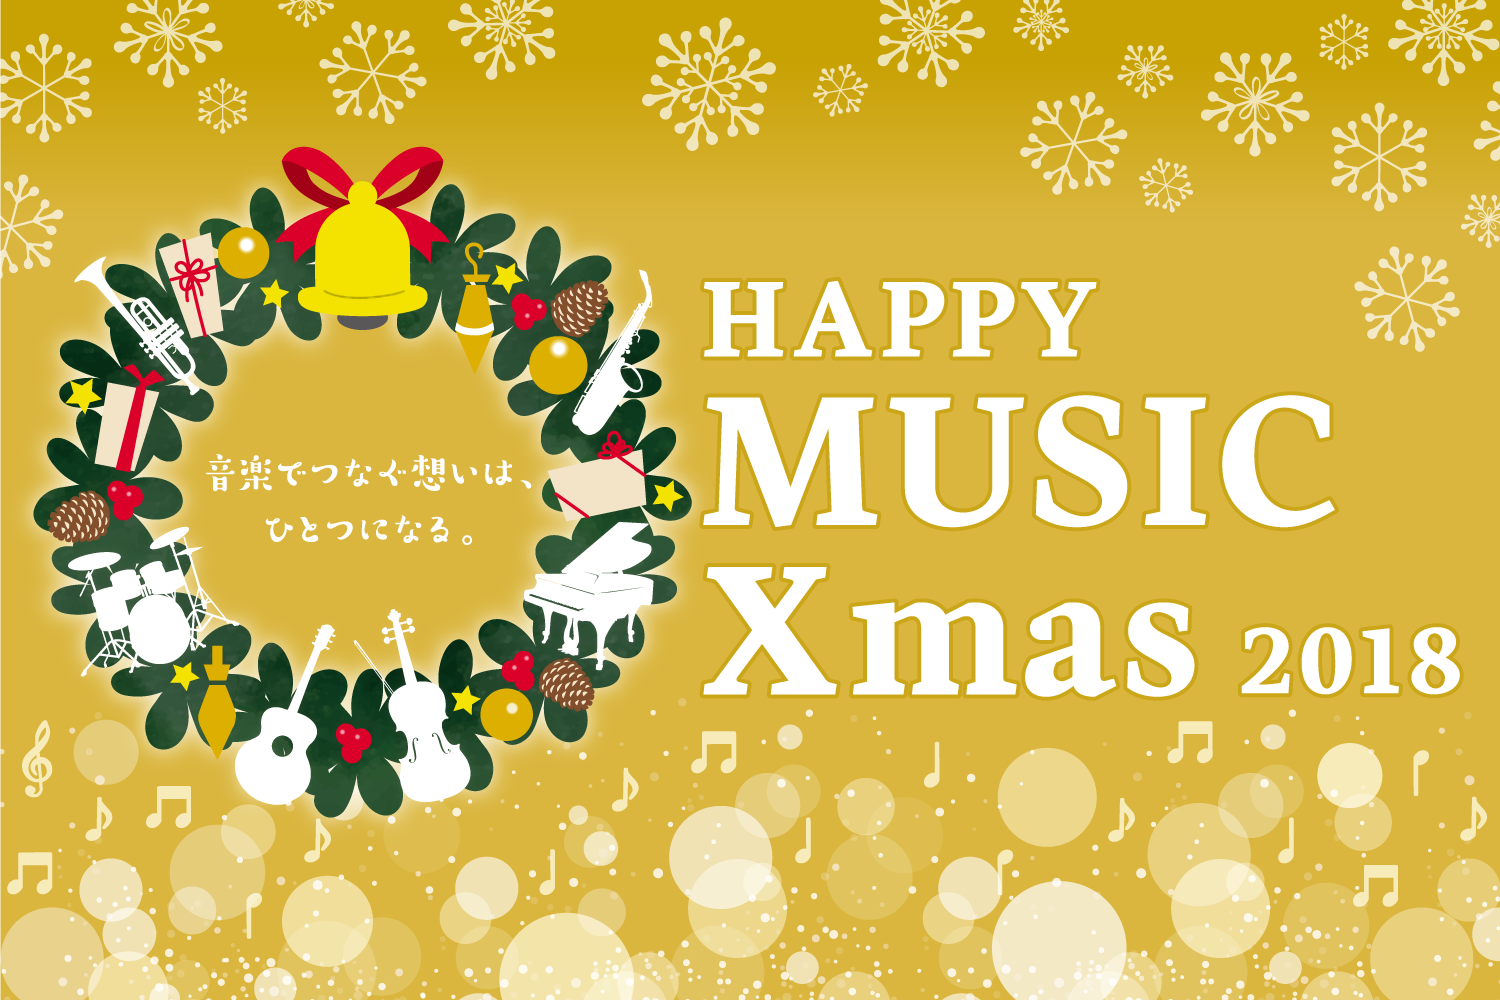 HAPPY MUSIC Xmas 2018